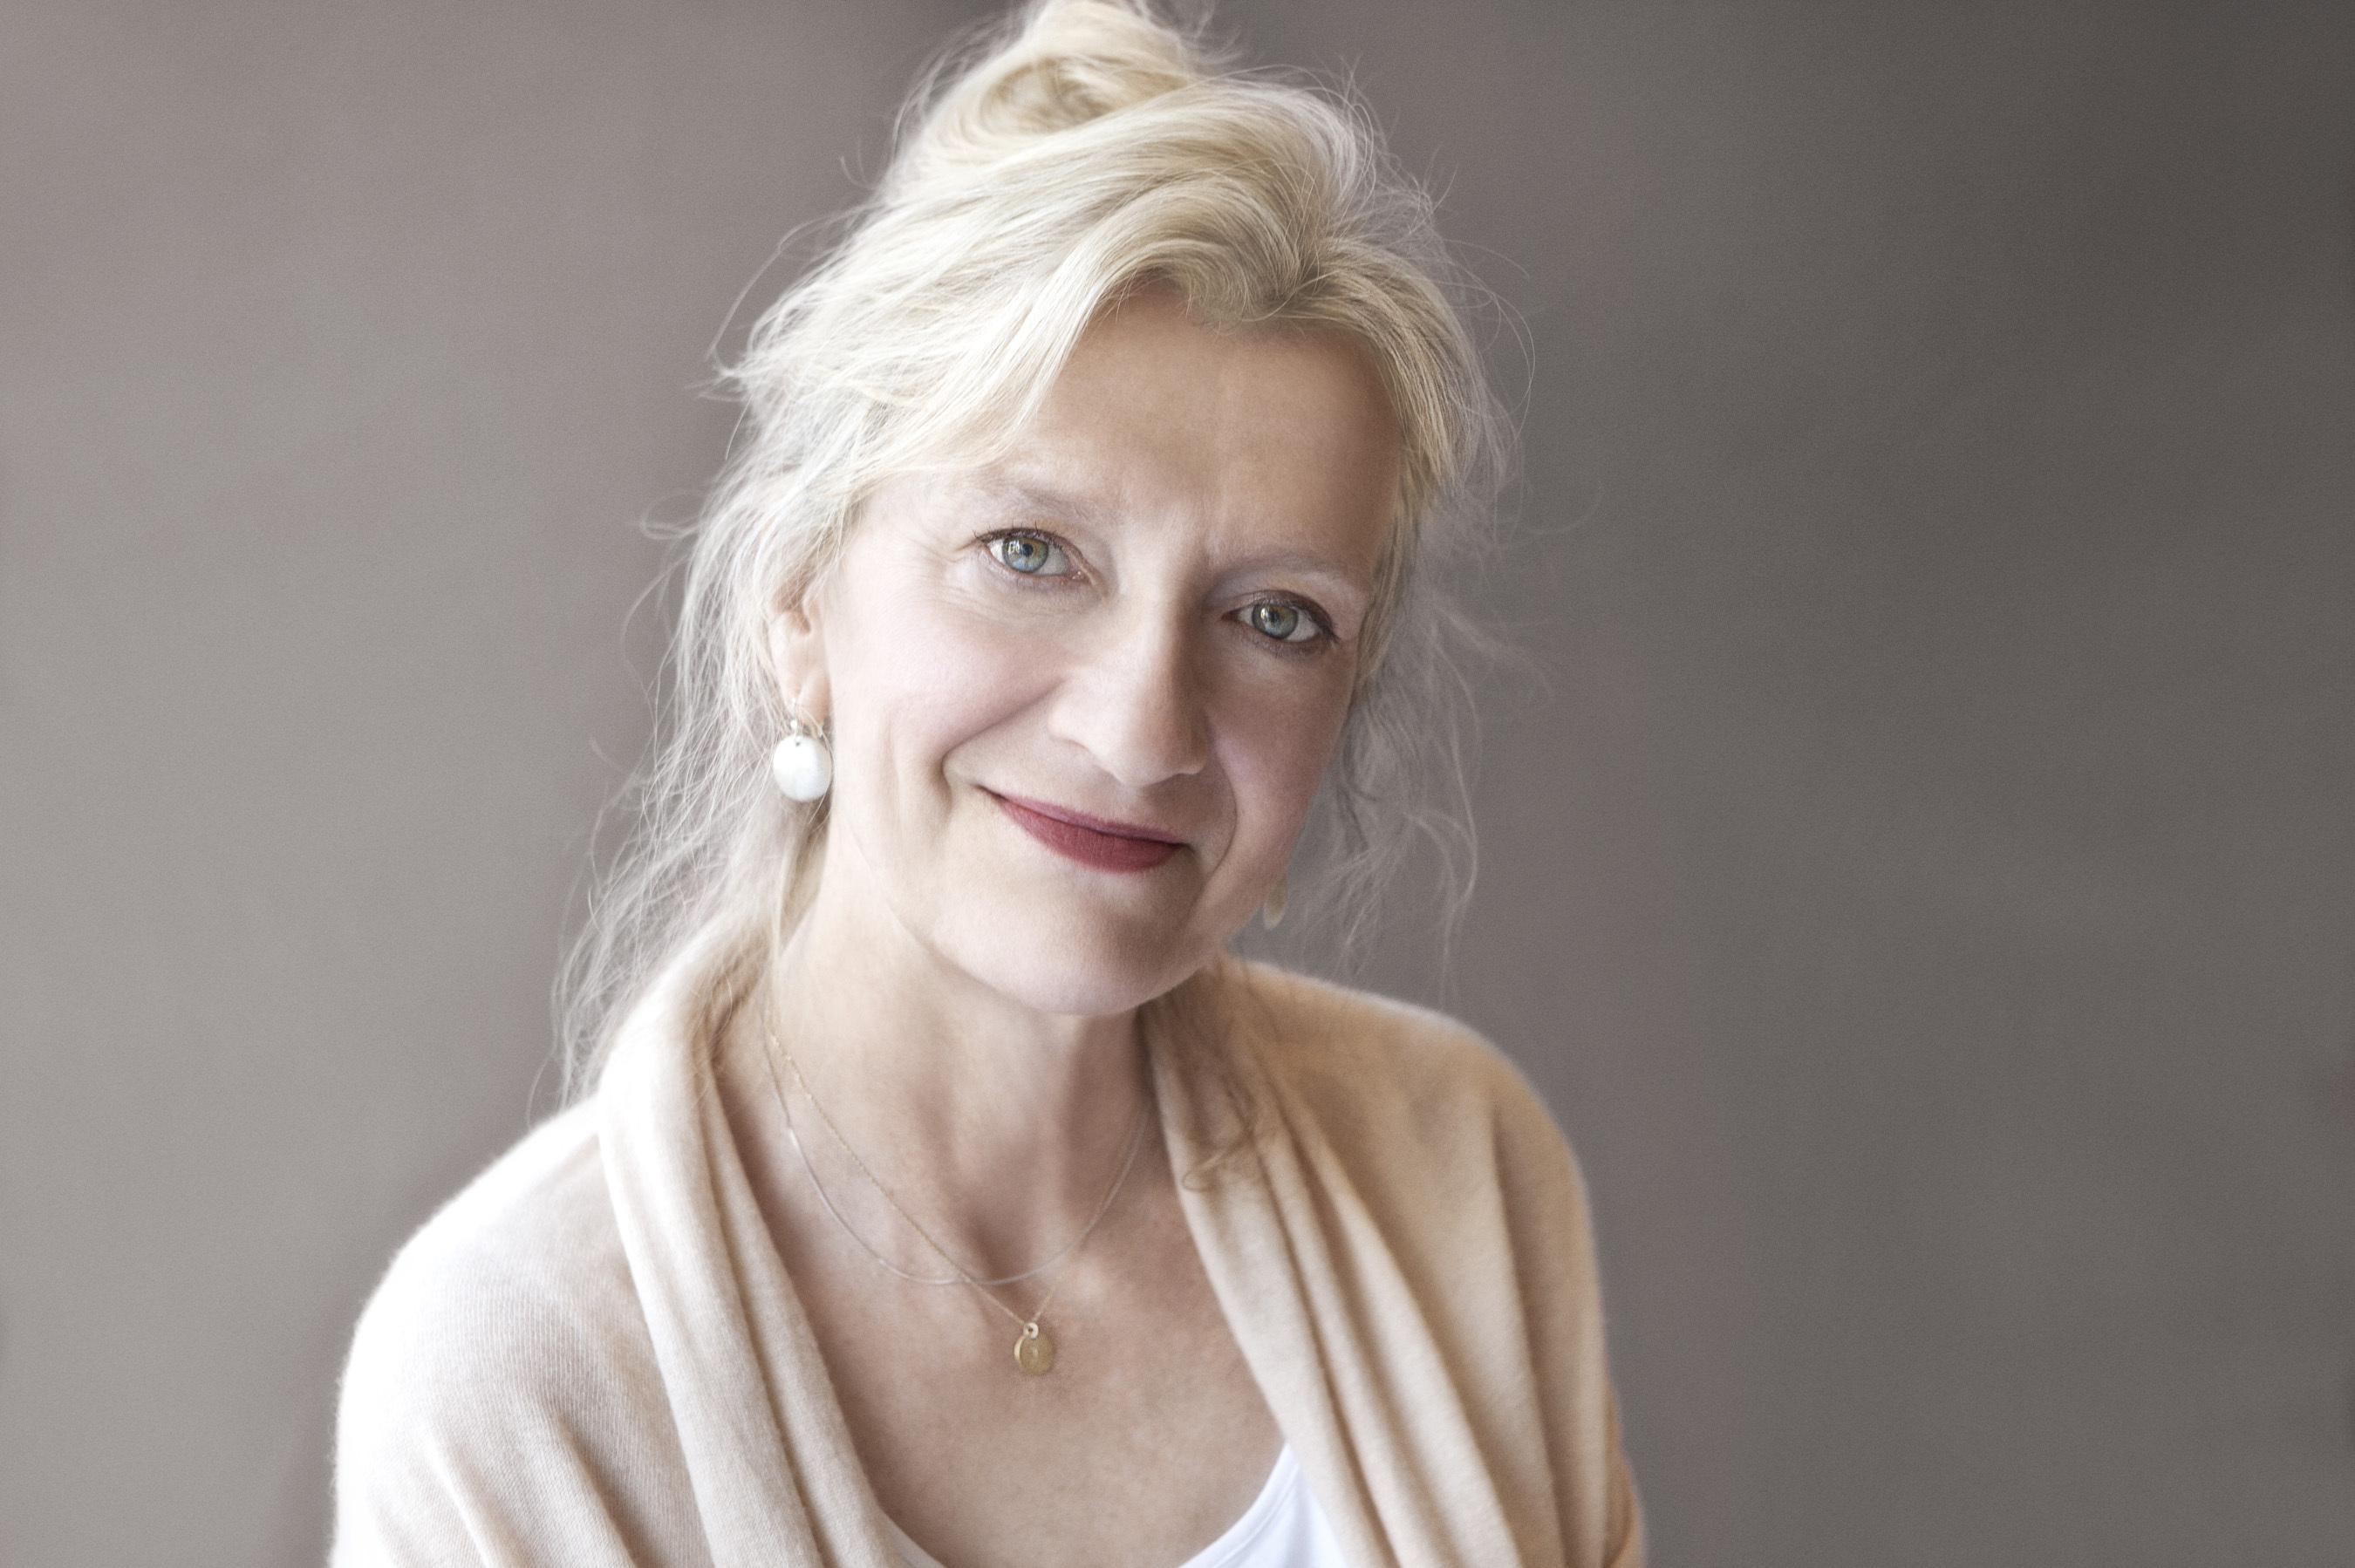 Elizabeth Strout won a Pulitzer Prize for Olive Kitteridge, her 2008 collection of interconnected stories.